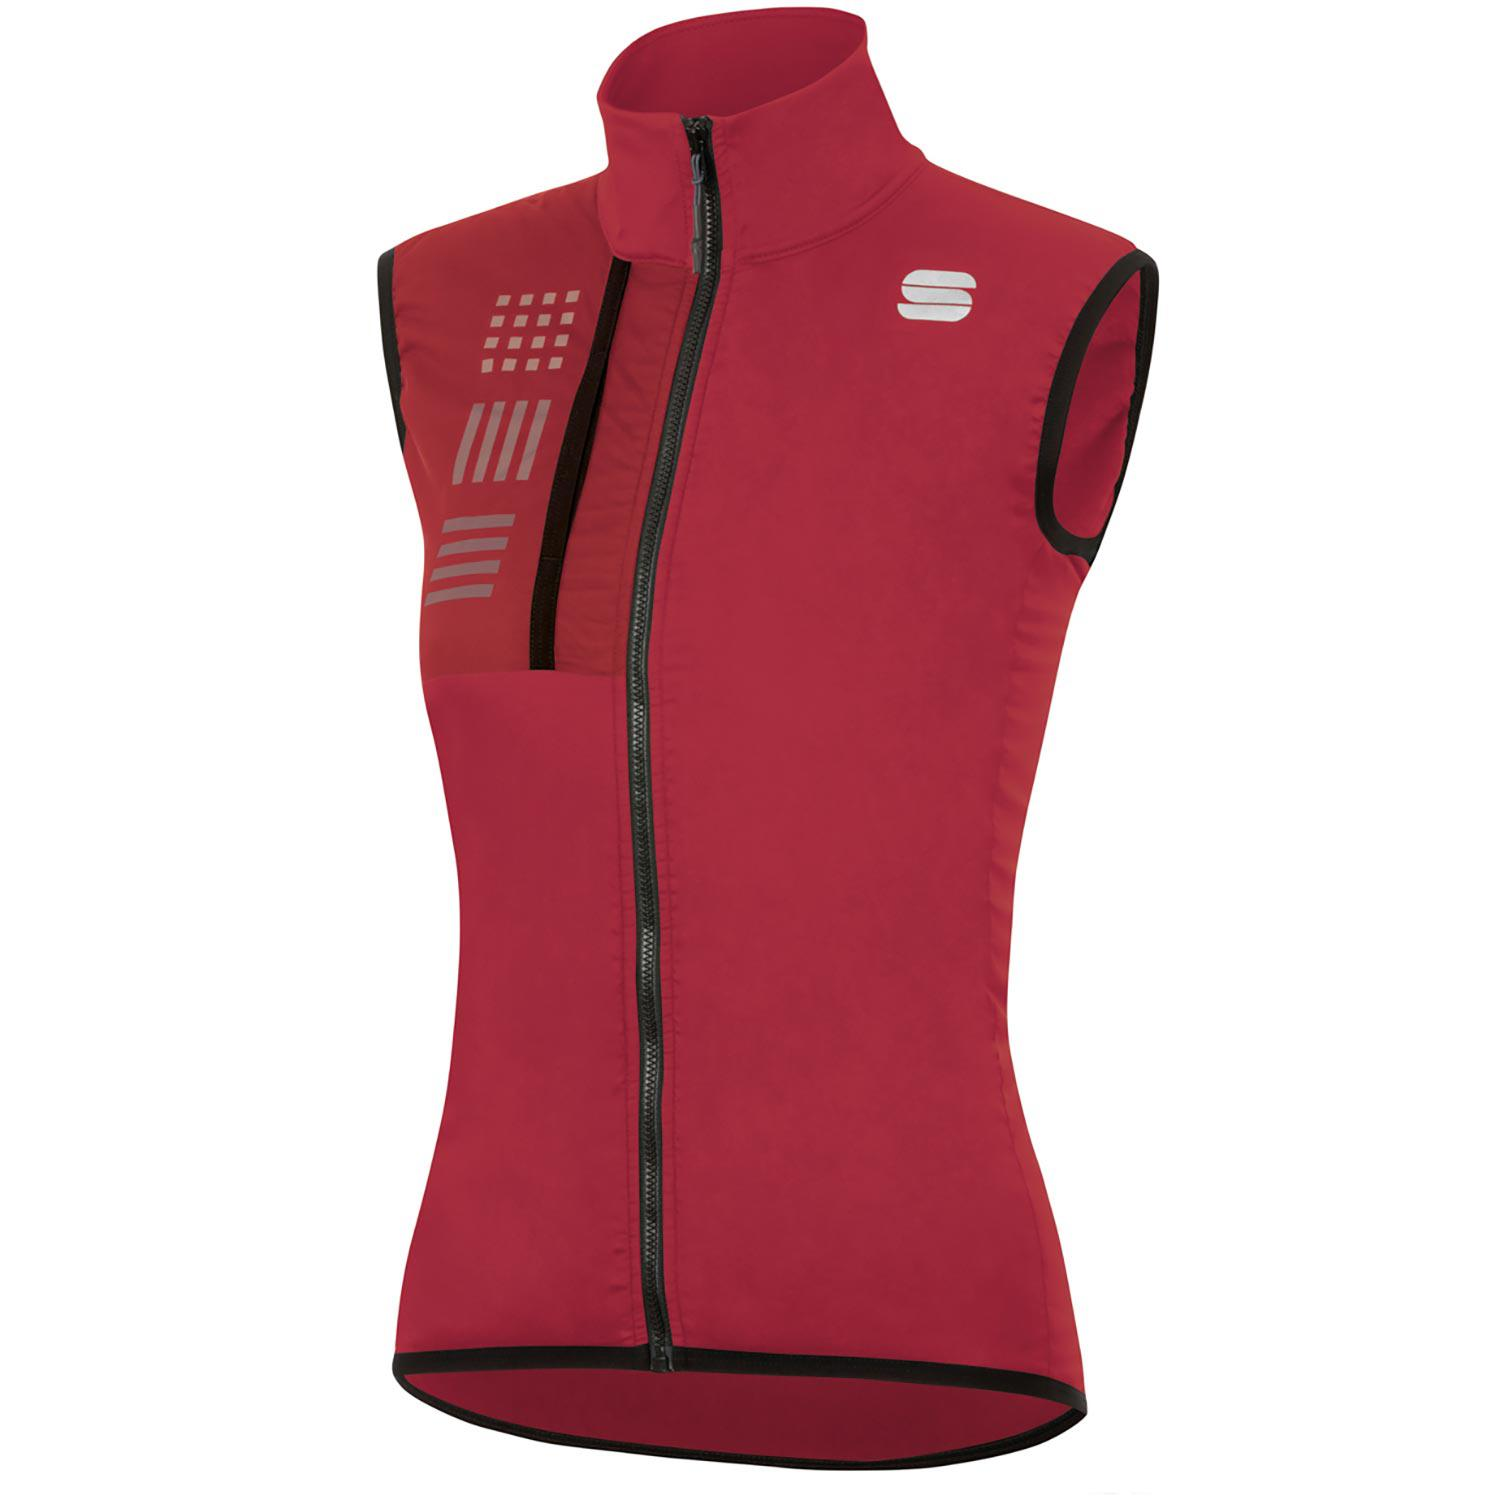 Sportful-Sportful Giara Layer Women's Vest-Red Rumba-XS-SF205096221-saddleback-elite-performance-cycling